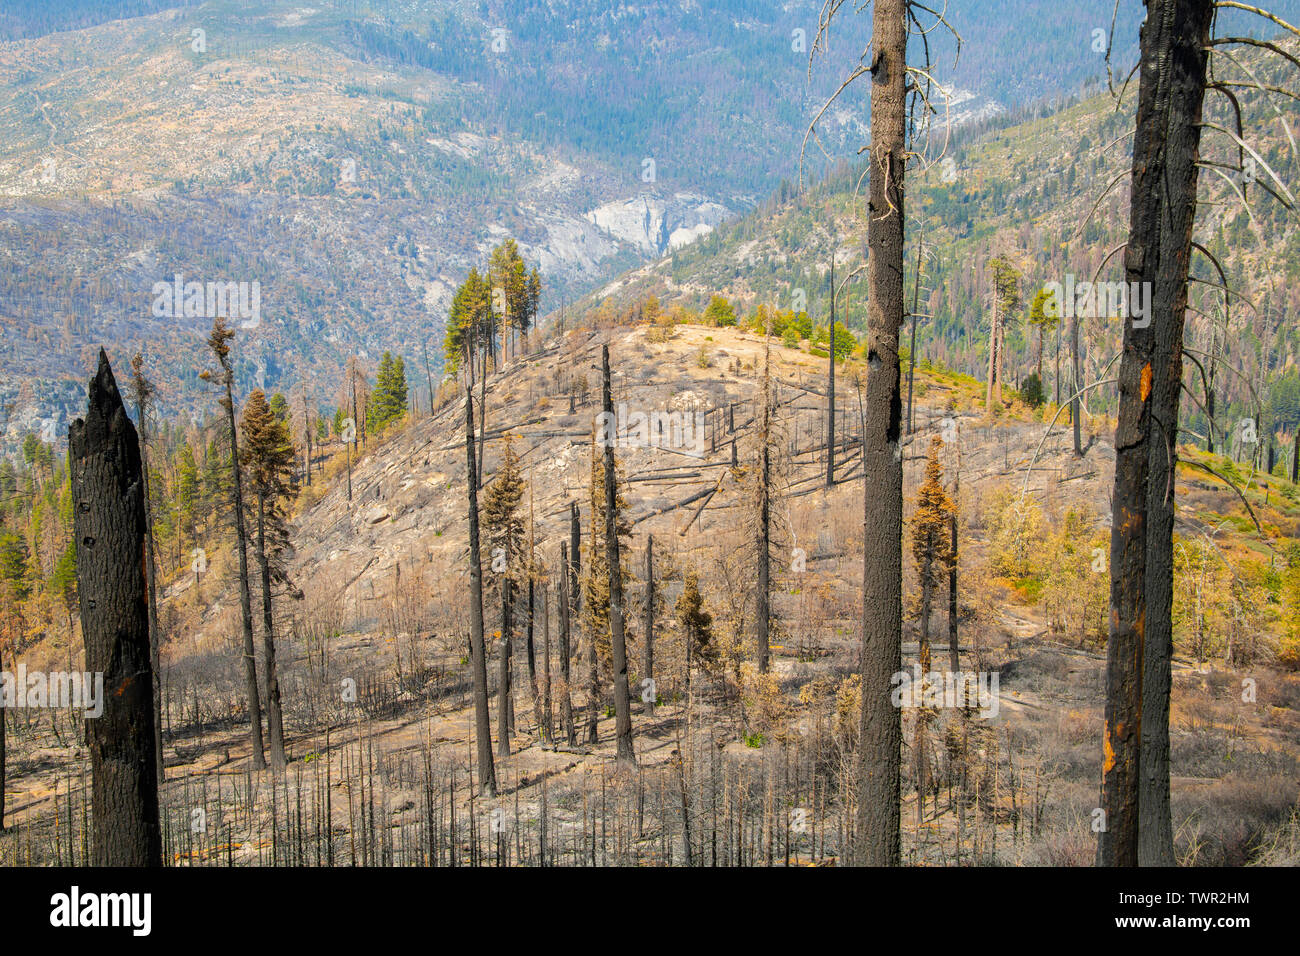 Aftermath of forest fires, Yosemite National Park, CA, USA, by Bill Lea/Dembinsky Photo Assoc Stock Photo